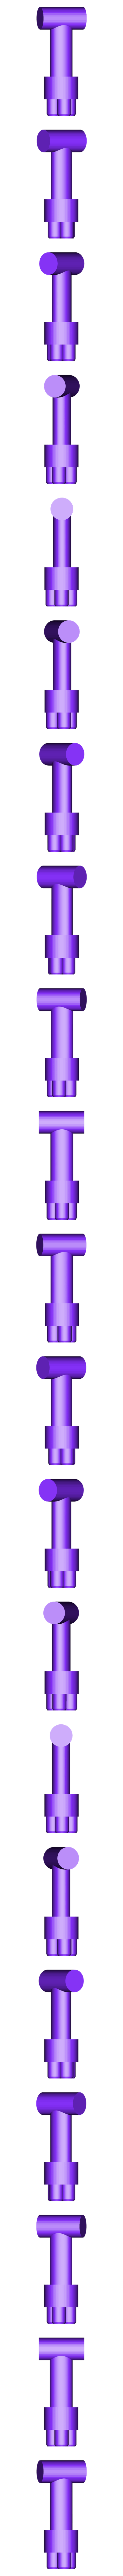 potato masher_corrected.stl Download free STL file MASHER • 3D printable design, hunterws